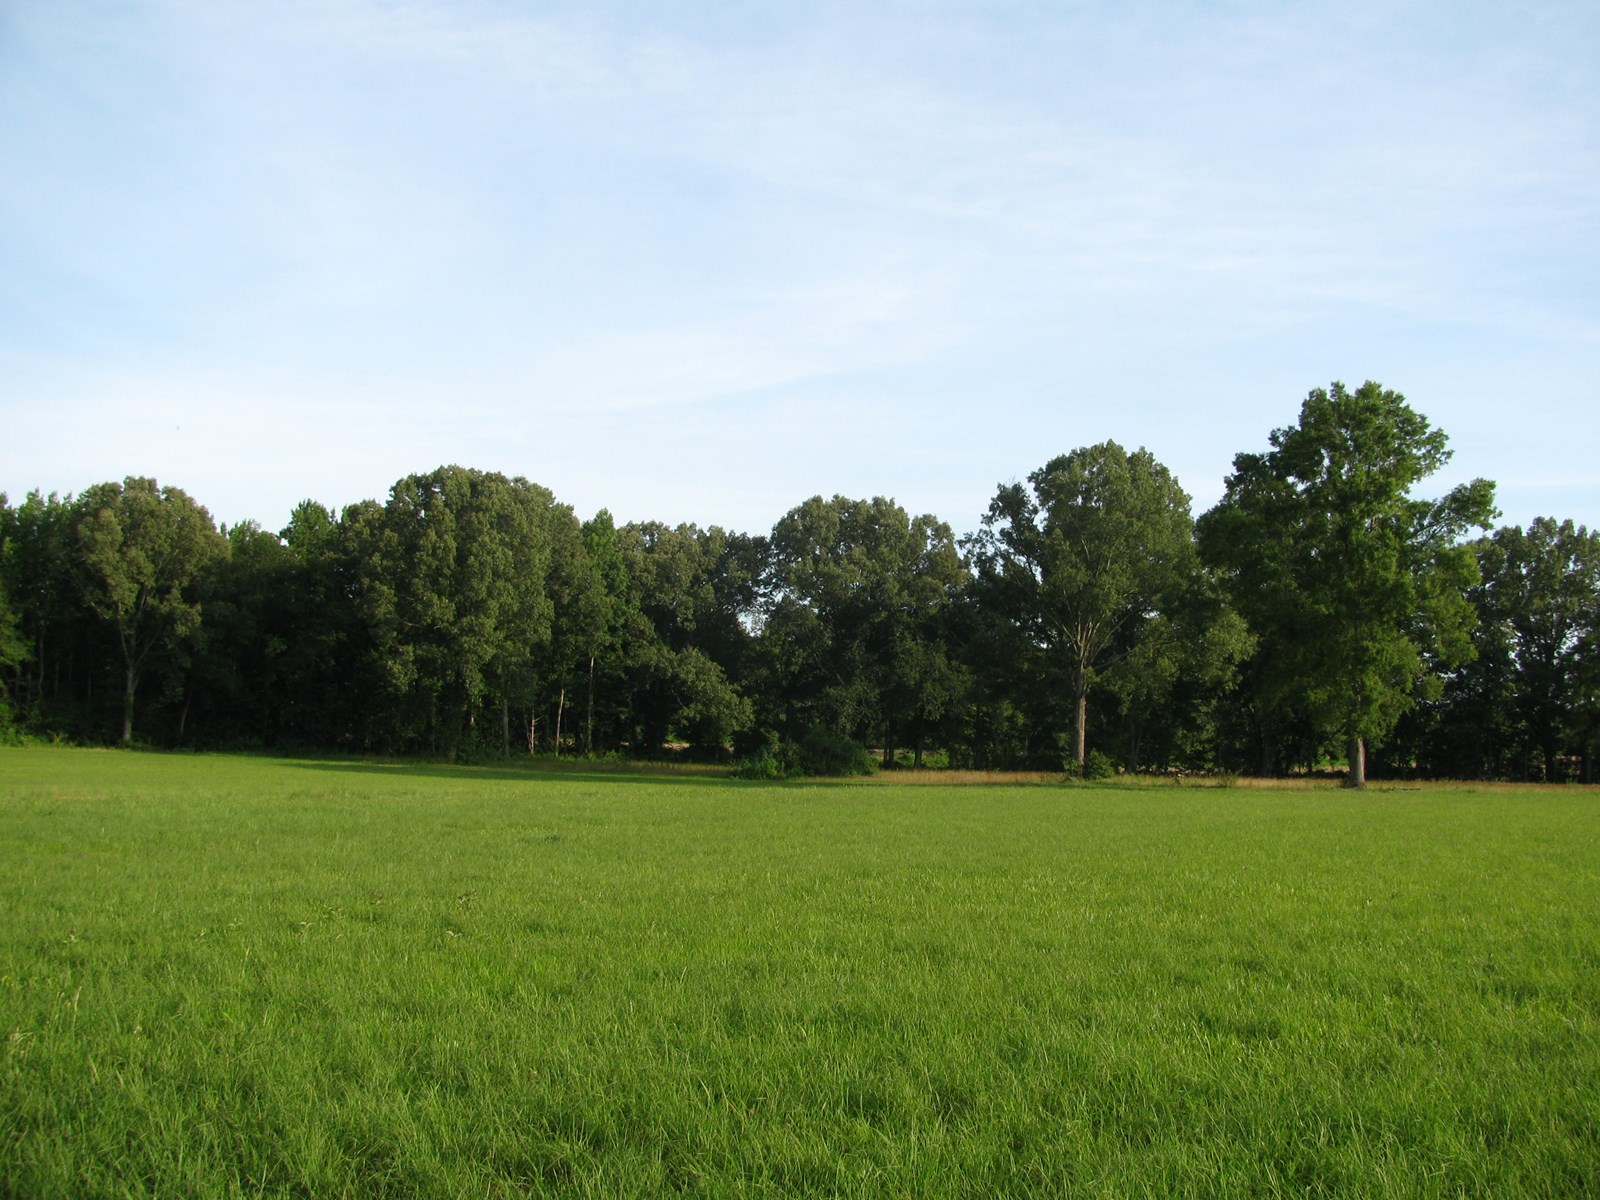 78 ACRES OF LAND FOR SALE IN TN, BUILDING SITES, CREEK